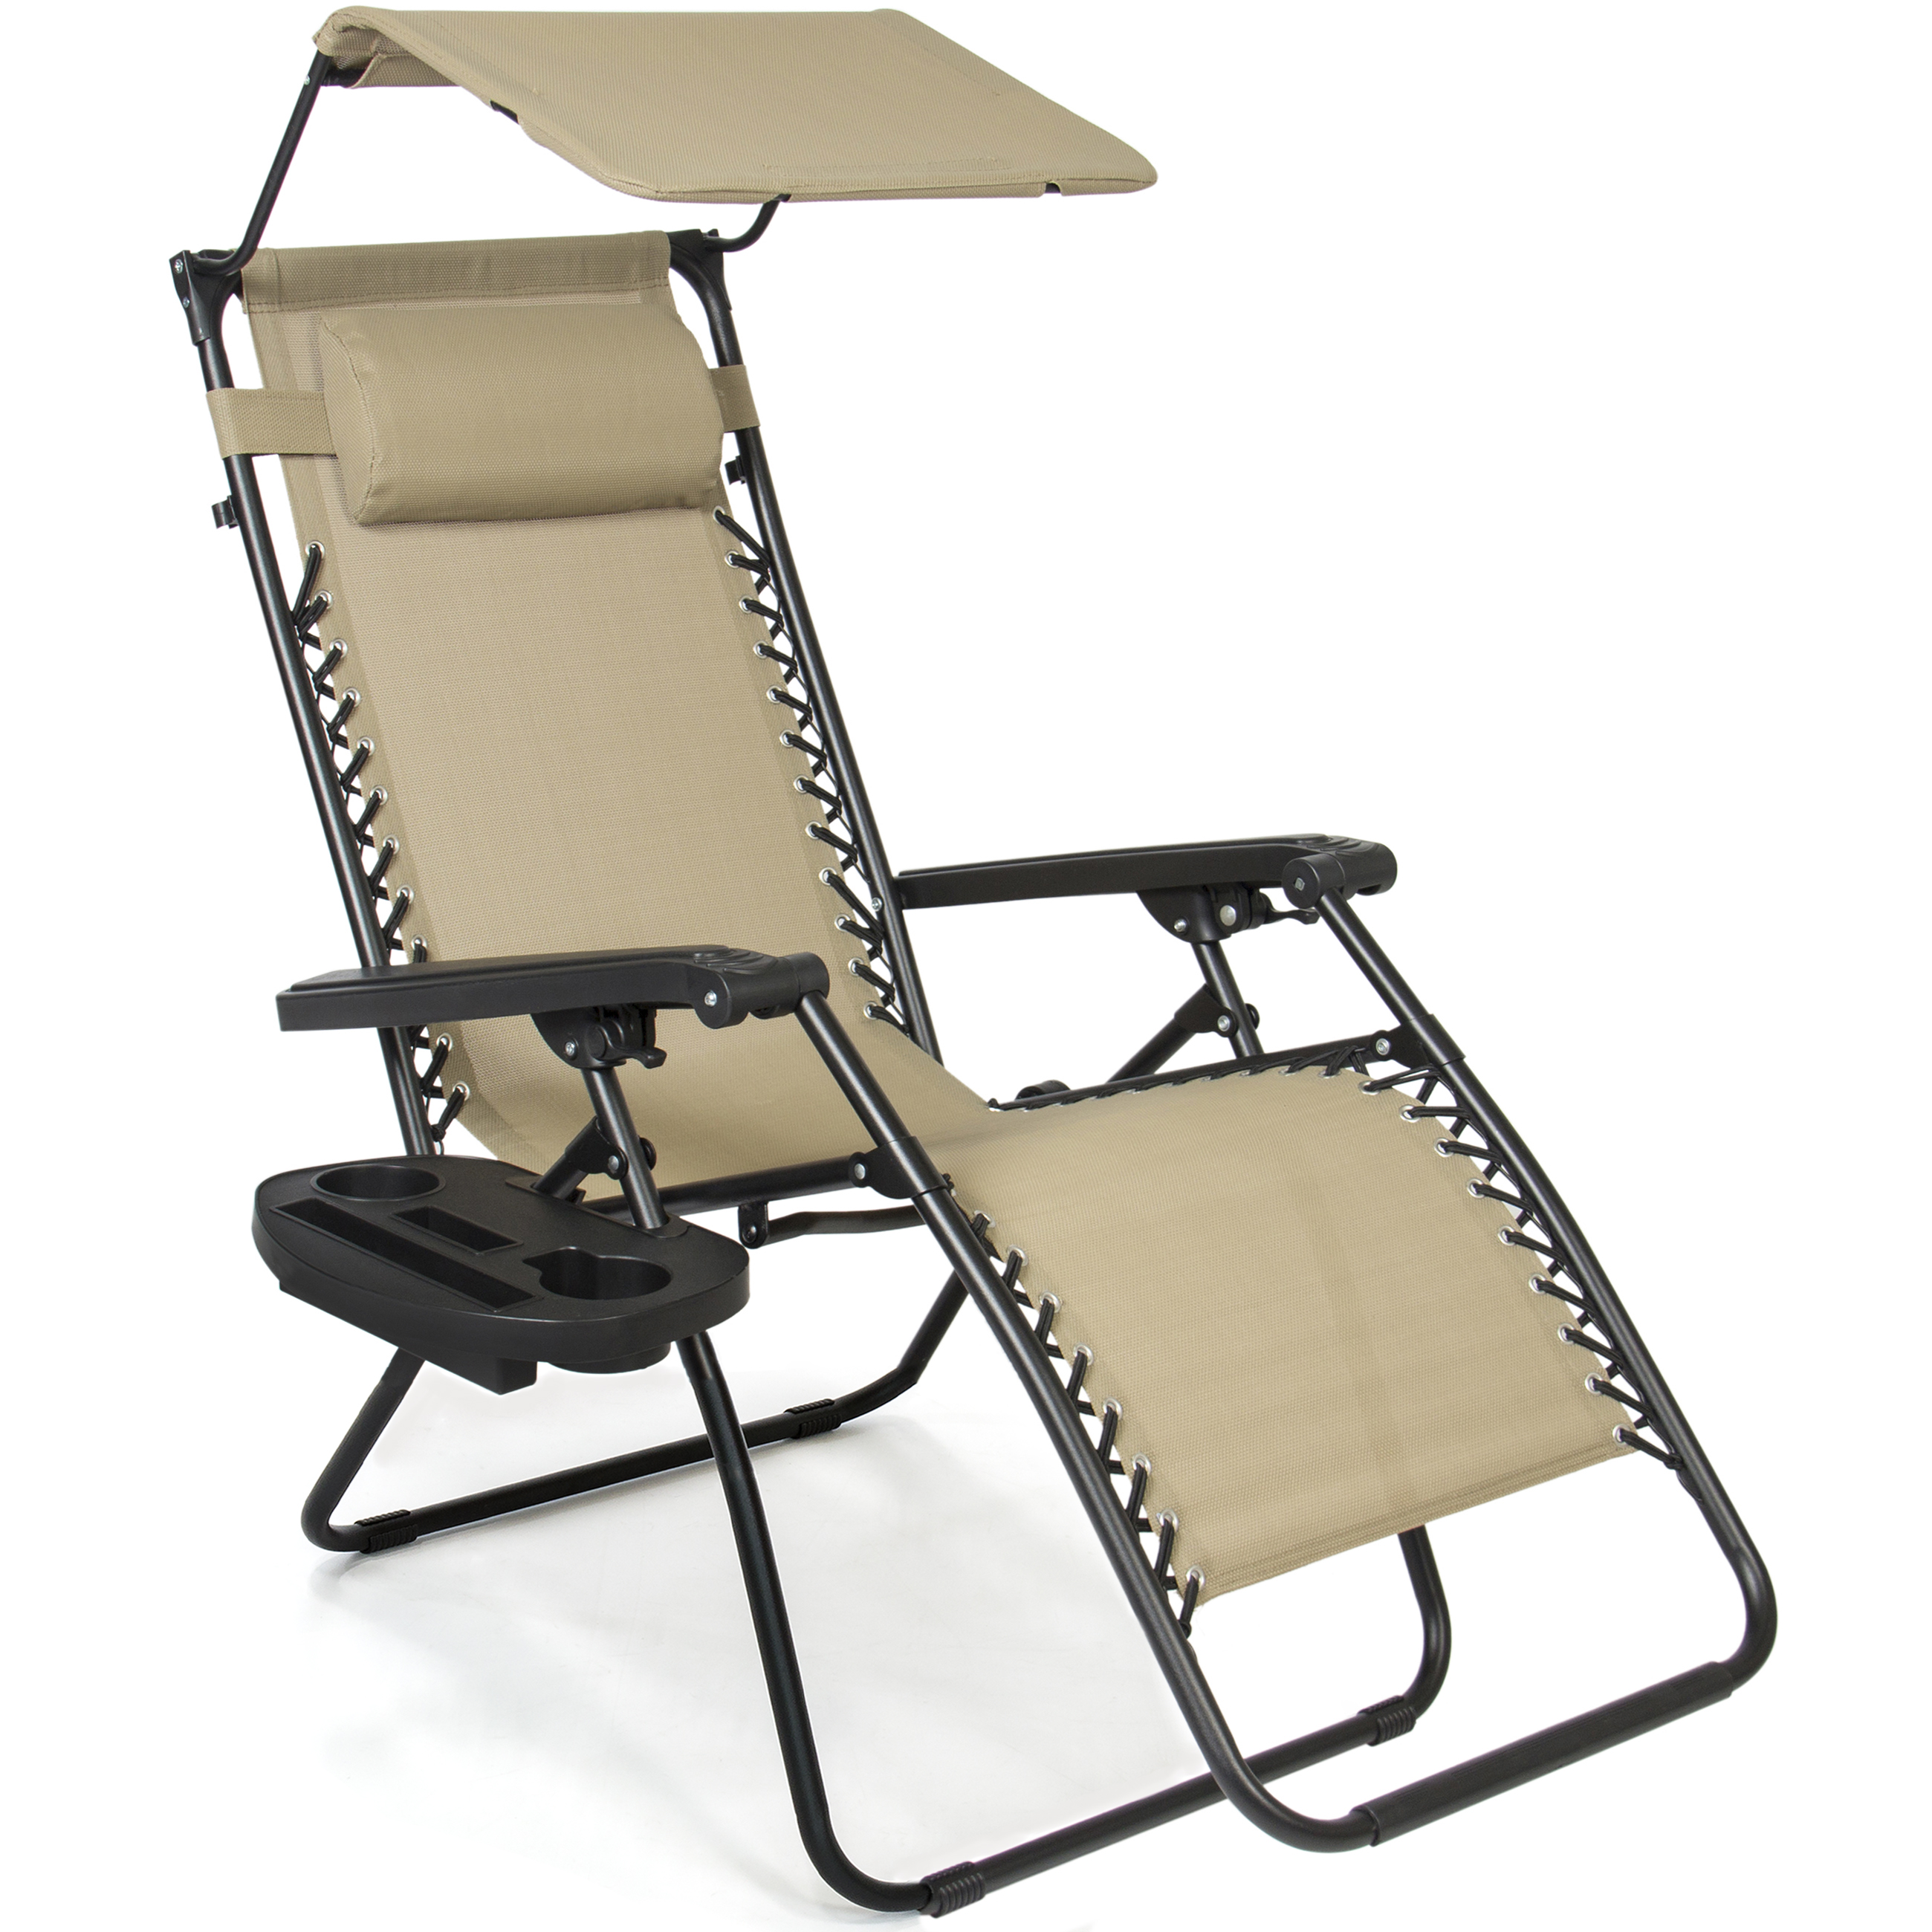 Folding Zero Gravity Recliner Lounge Chair With Canopy Shade u0026 Magazine Cup Holder  sc 1 st  Walmart & Folding Zero Gravity Recliner Lounge Chair With Canopy Shade ...